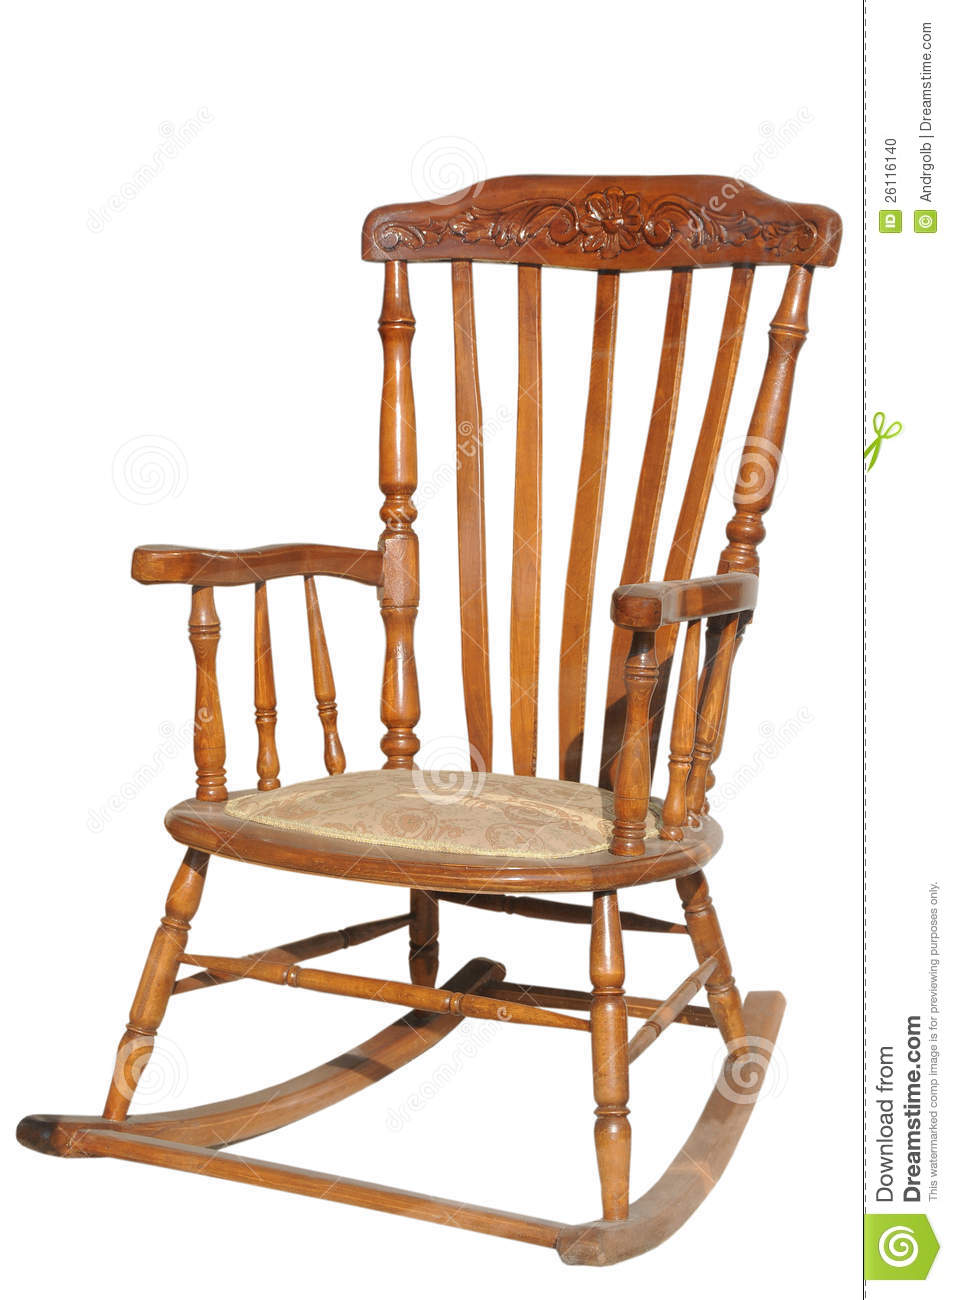 Rocking Chair Clipart rocking chair on porch clipart - magiel